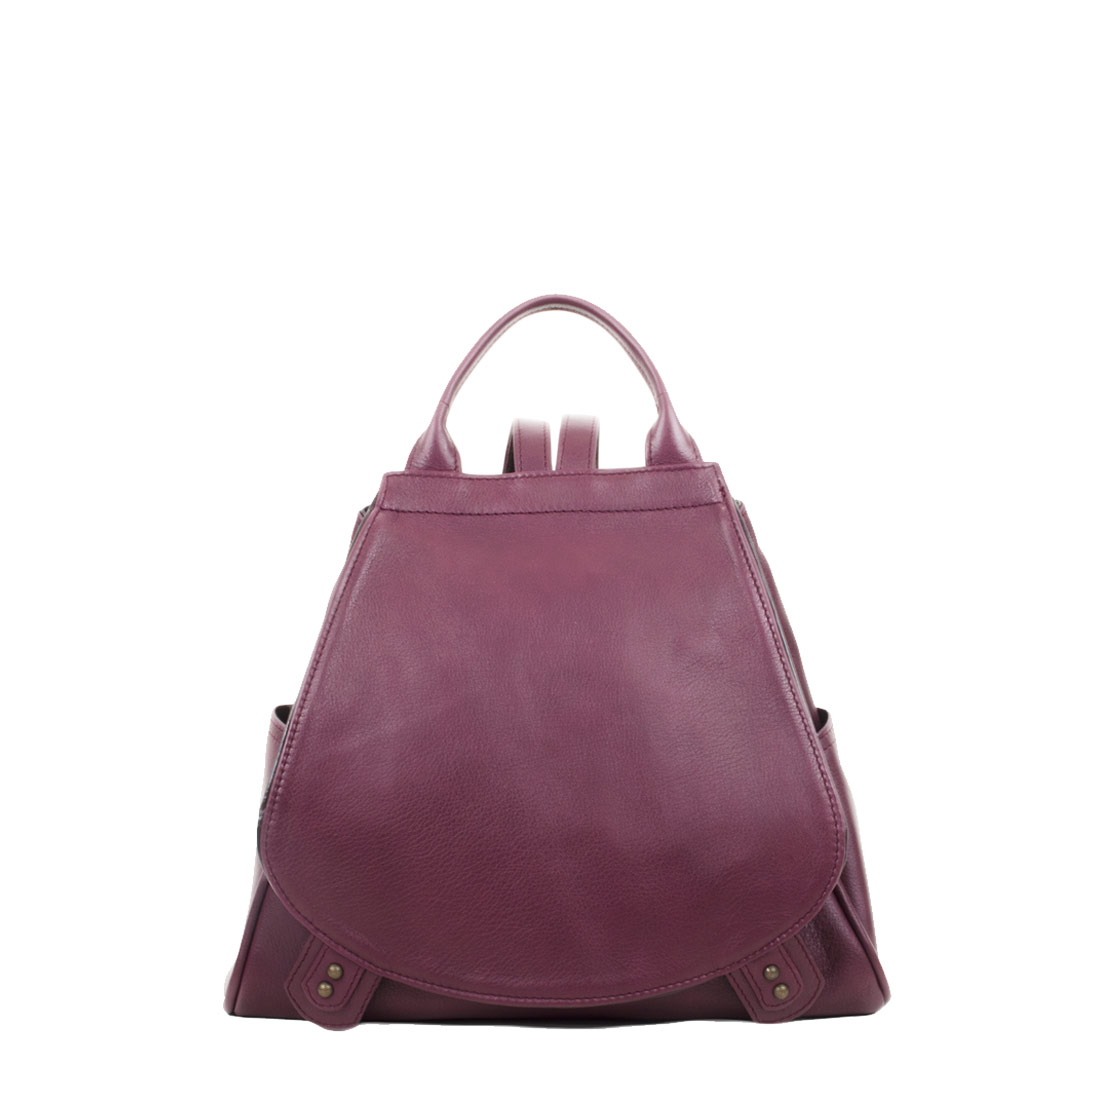 Daliya Plum Leather Backpack